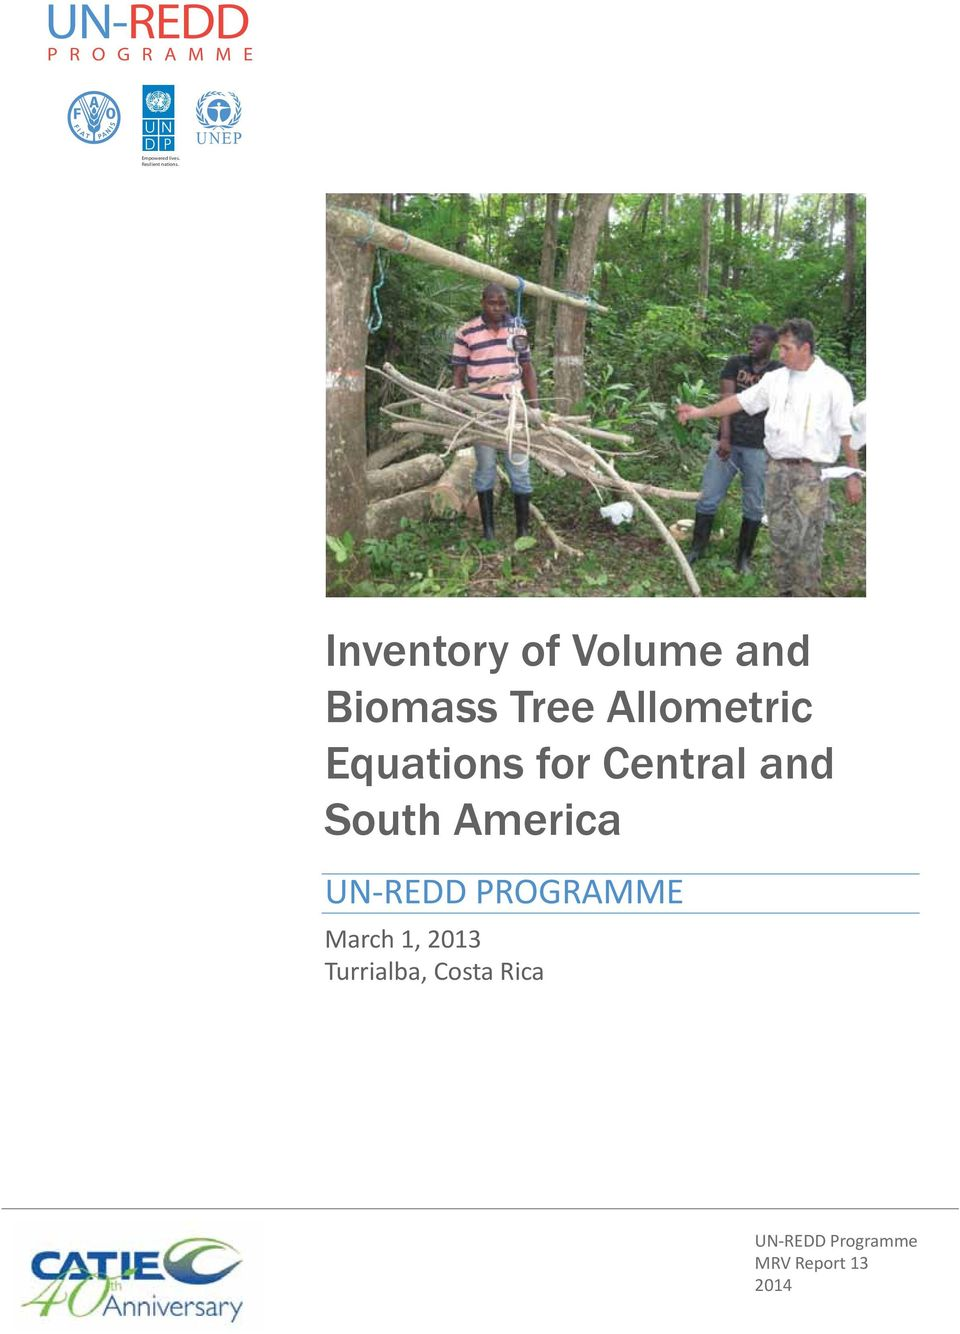 Inventory of Volume and Biomass Tree Allometric Equations for